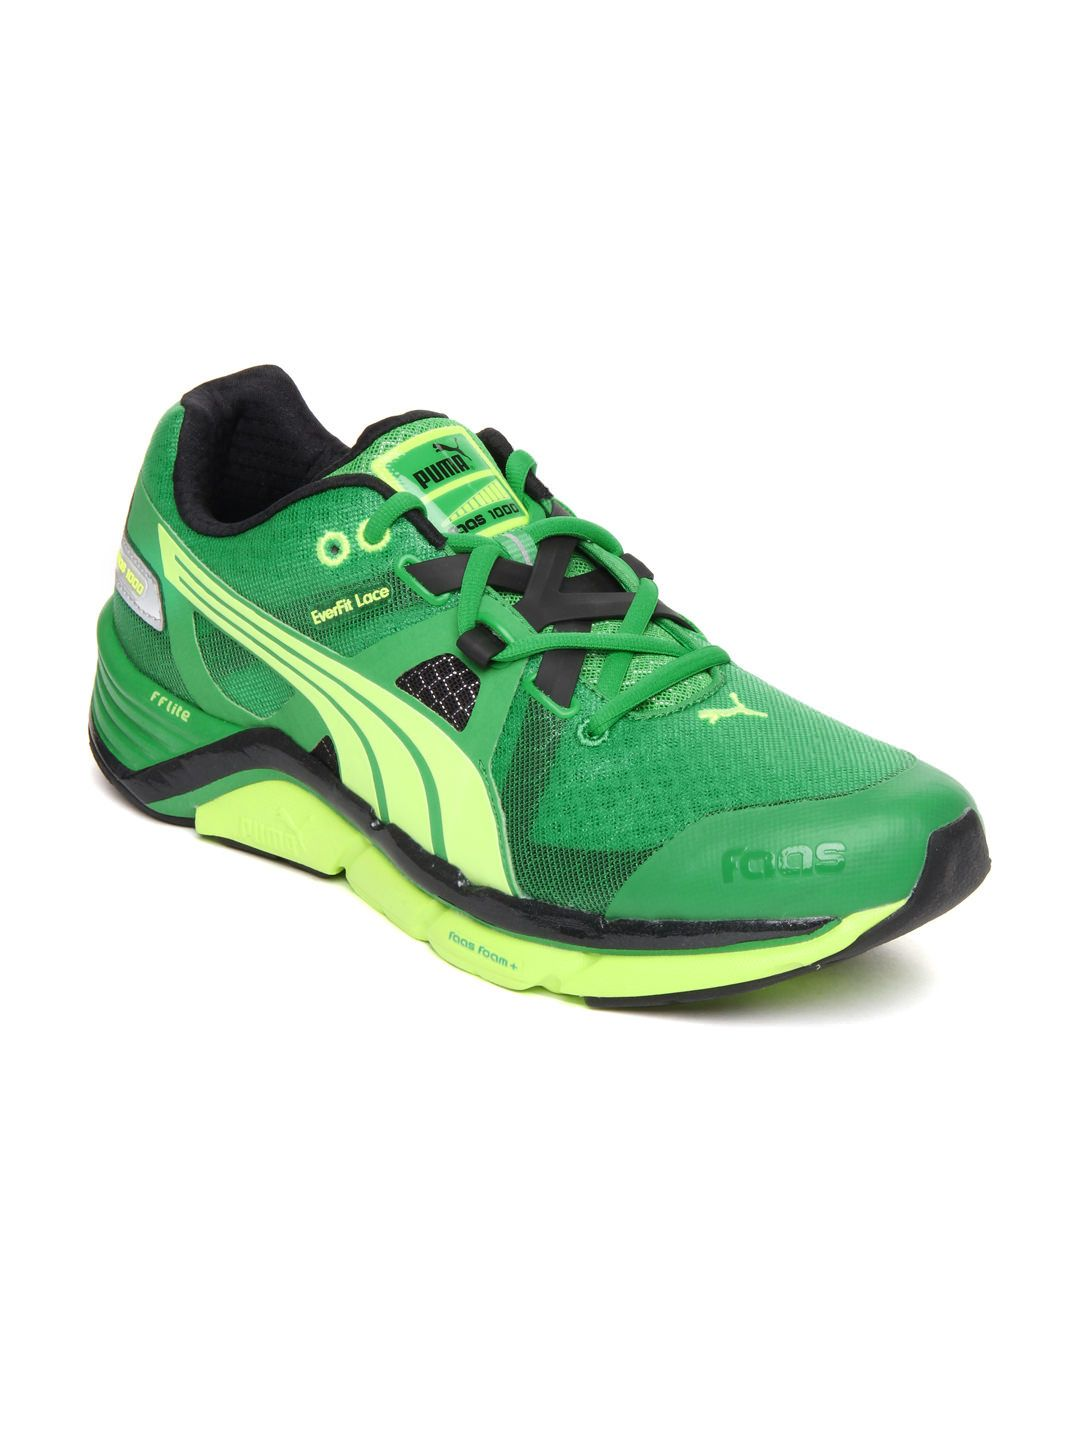 091ca00c18 Men Green Sports Www Faas Price 1000 Puma Shoes Best qwzwg5